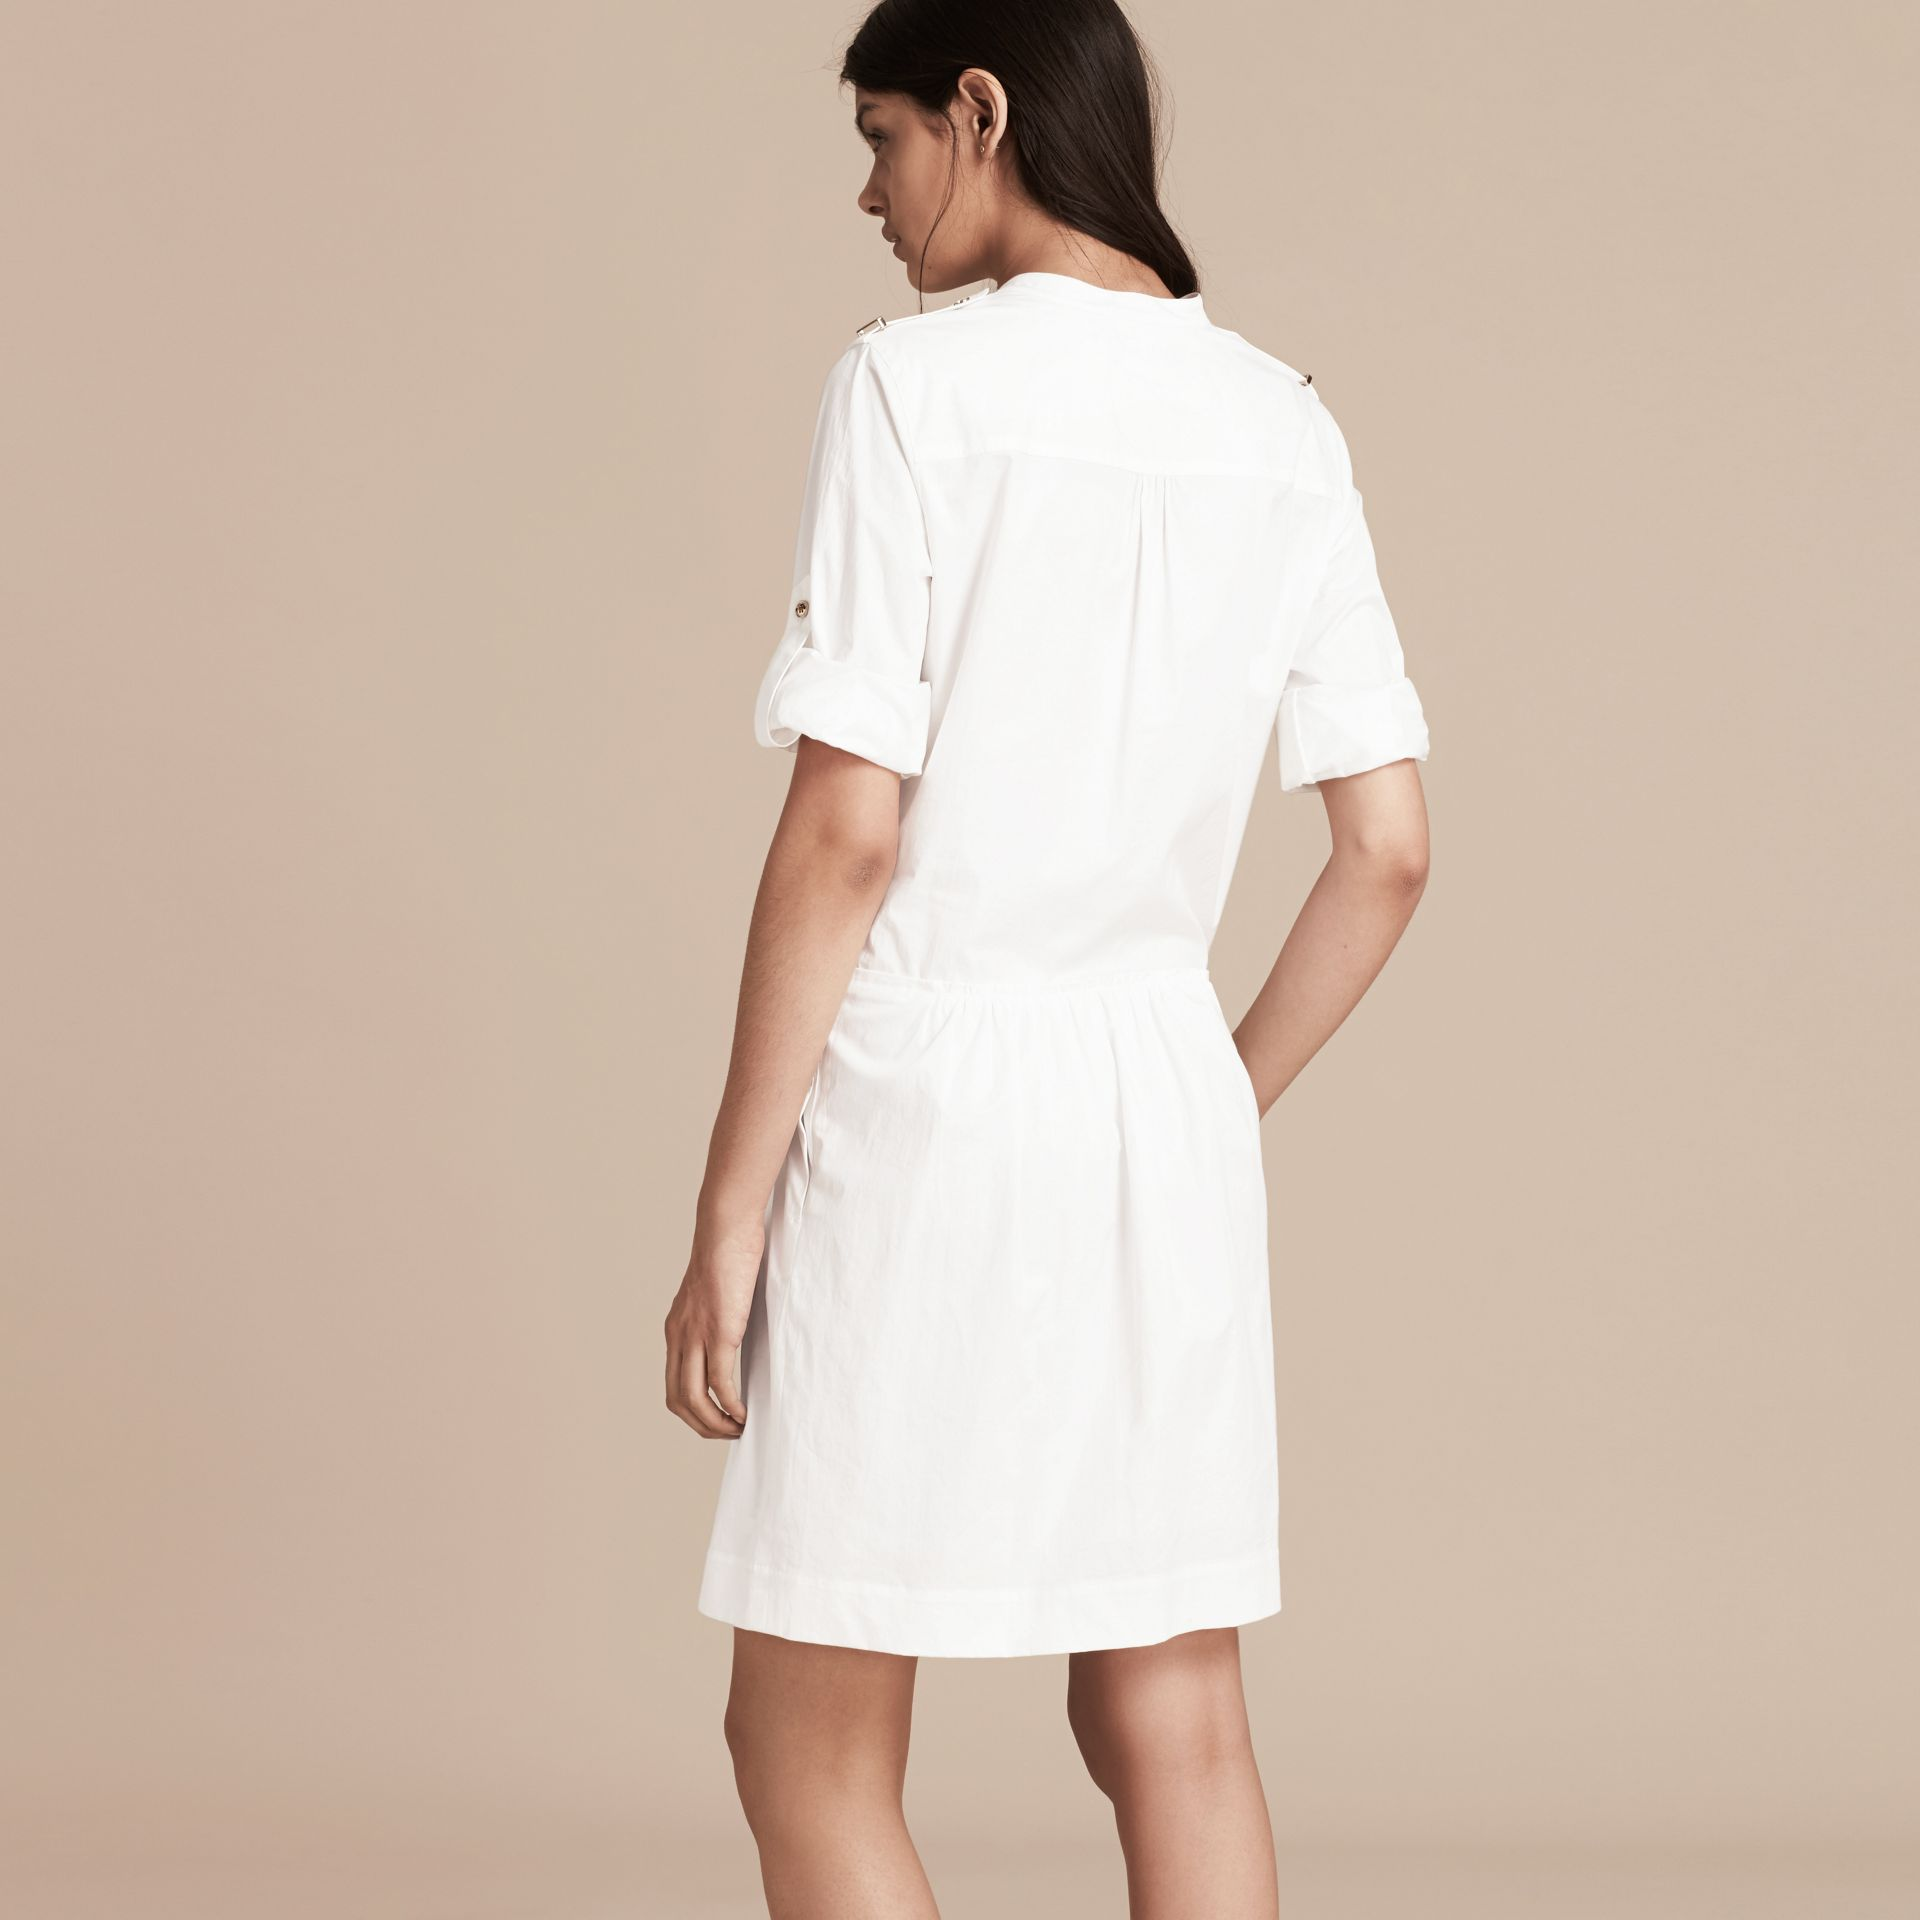 White Military-inspired Cotton Blend Shirt Dress White - gallery image 3